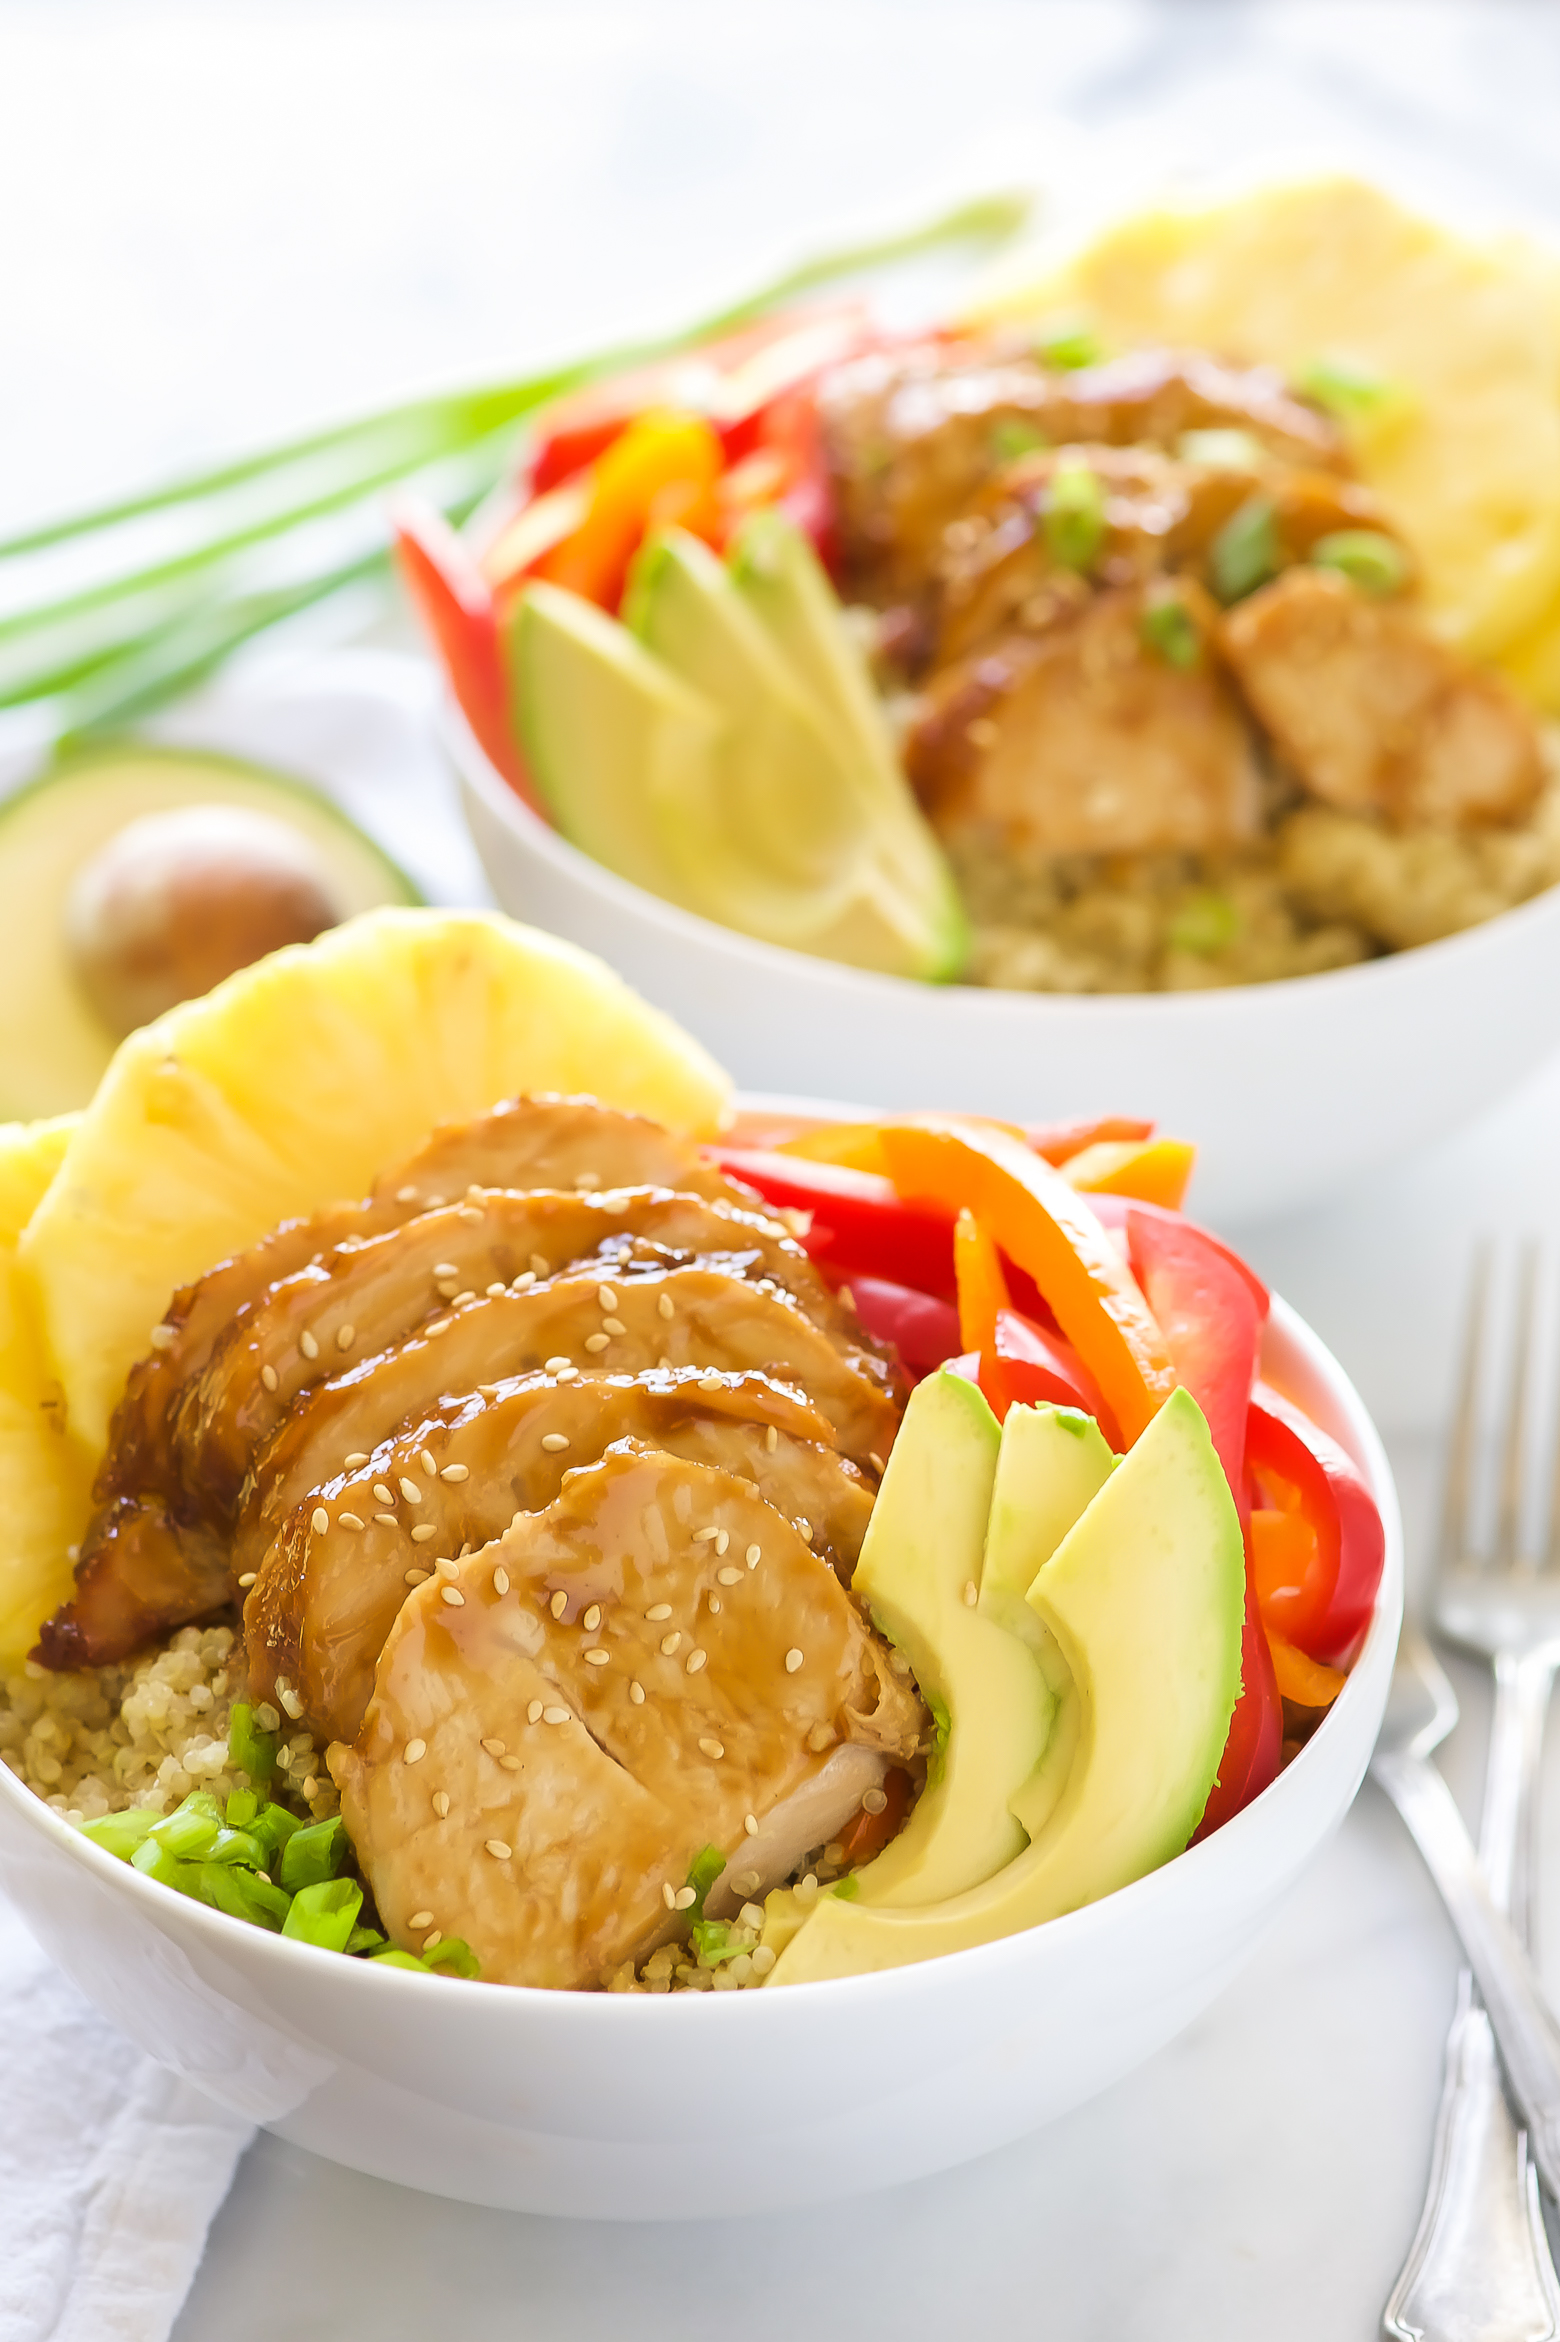 Honey Soy Glazed Hawaiian Bowls pack a serious flavor punch! Honey soy glazed turkey tenderloins are baked then added to bowl filled with rice, juicy pineapple, peppers, onions, and avocados. This one dish wonder is perfect for any weeknight dinner!